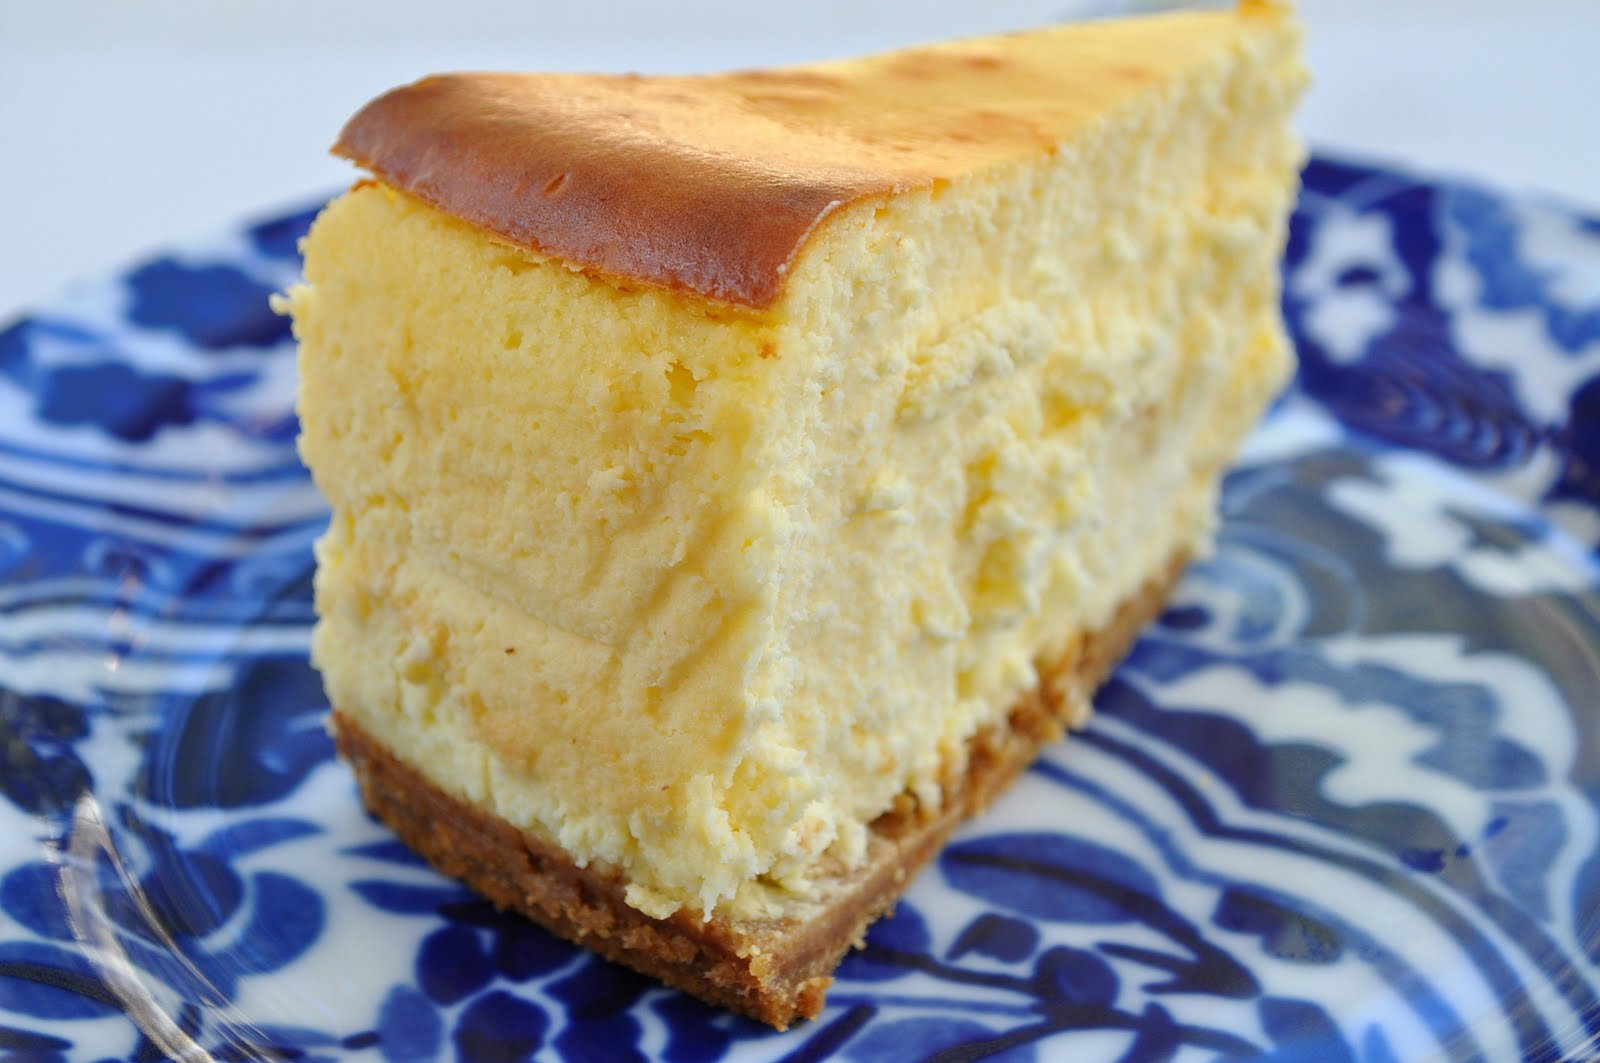 Freeing My Martha: Creamy, Satiny New York Cheesecake